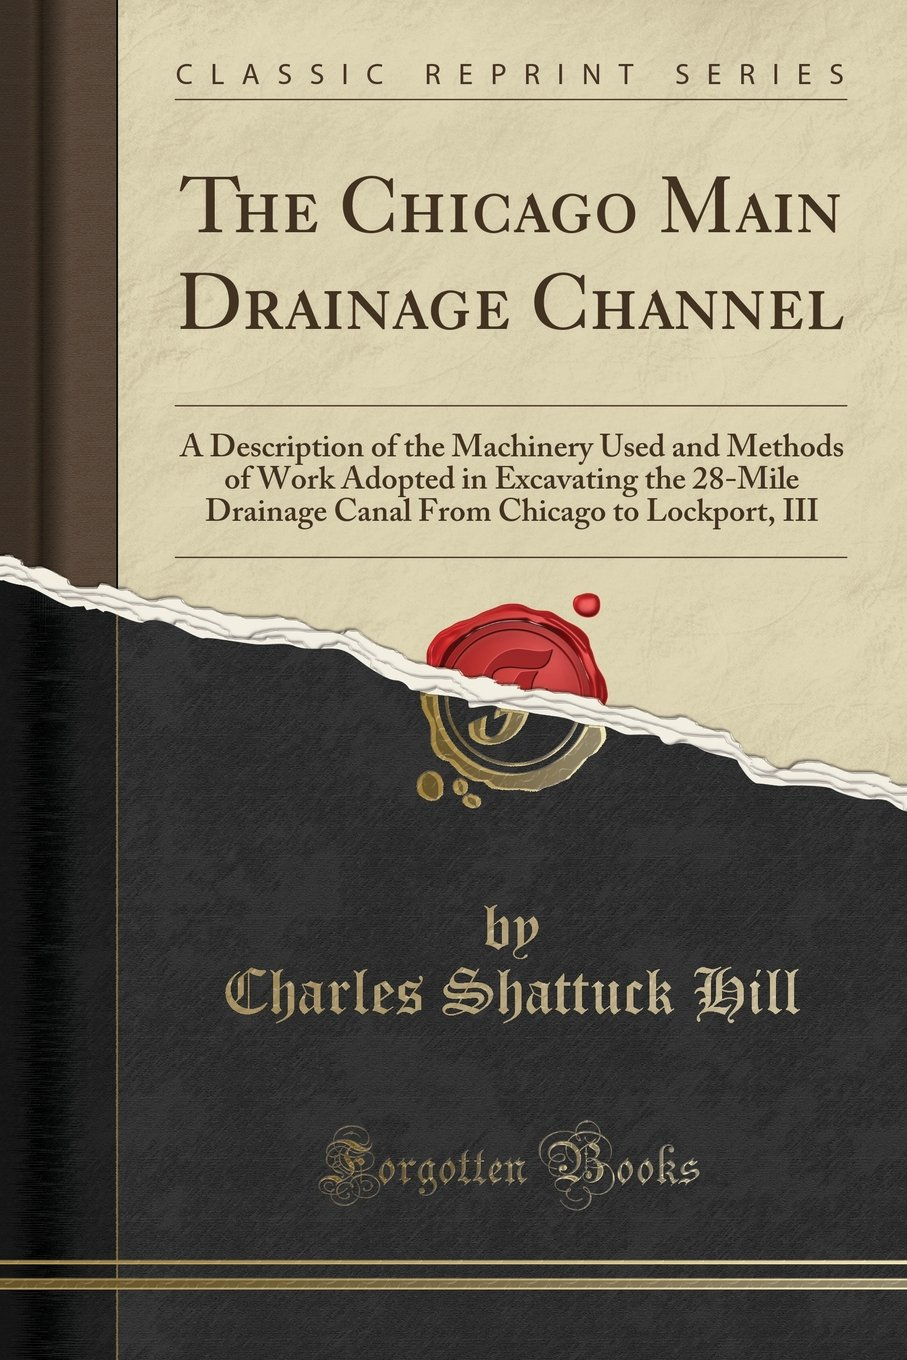 Download The Chicago Main Drainage Channel: A Description of the Machinery Used and Methods of Work Adopted in Excavating the 28-Mile Drainage Canal From Chicago to Lockport, III (Classic Reprint) ebook